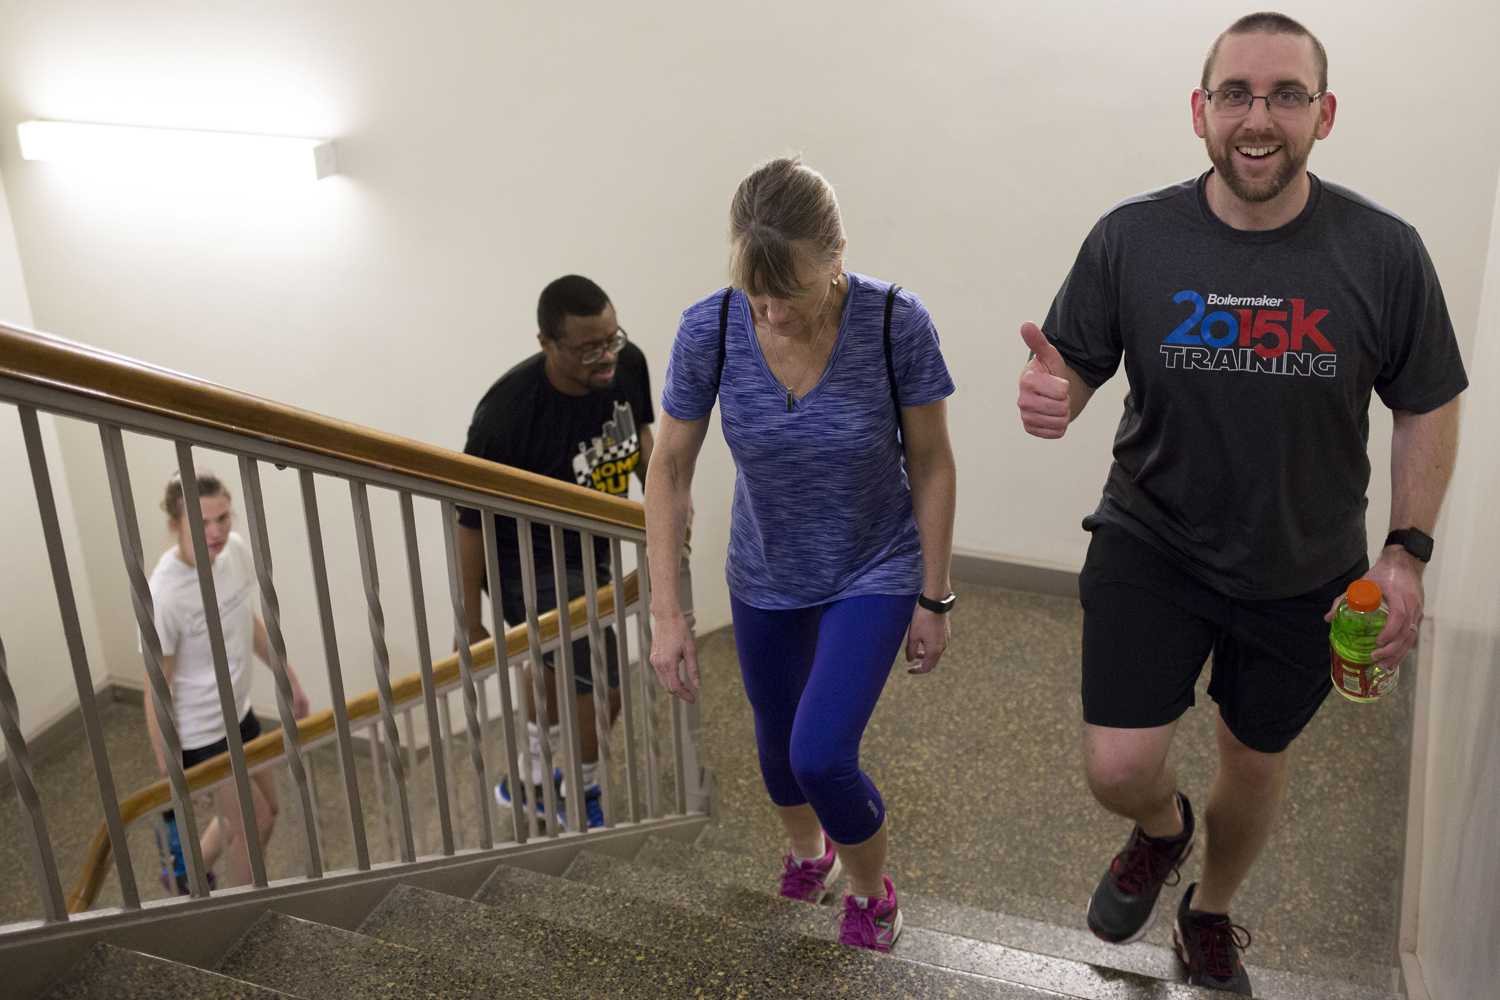 Participants of the 2018 Run to Cure CF fundraiser, sponsored by the Cystic Fibrosis Foundation, trekked from the basement of the Cathedral of Learning to the 36th floor to raise money and awareness for cystic fibrosis research last Thursday. (Photo by Thomas Yang | Visual Editor)